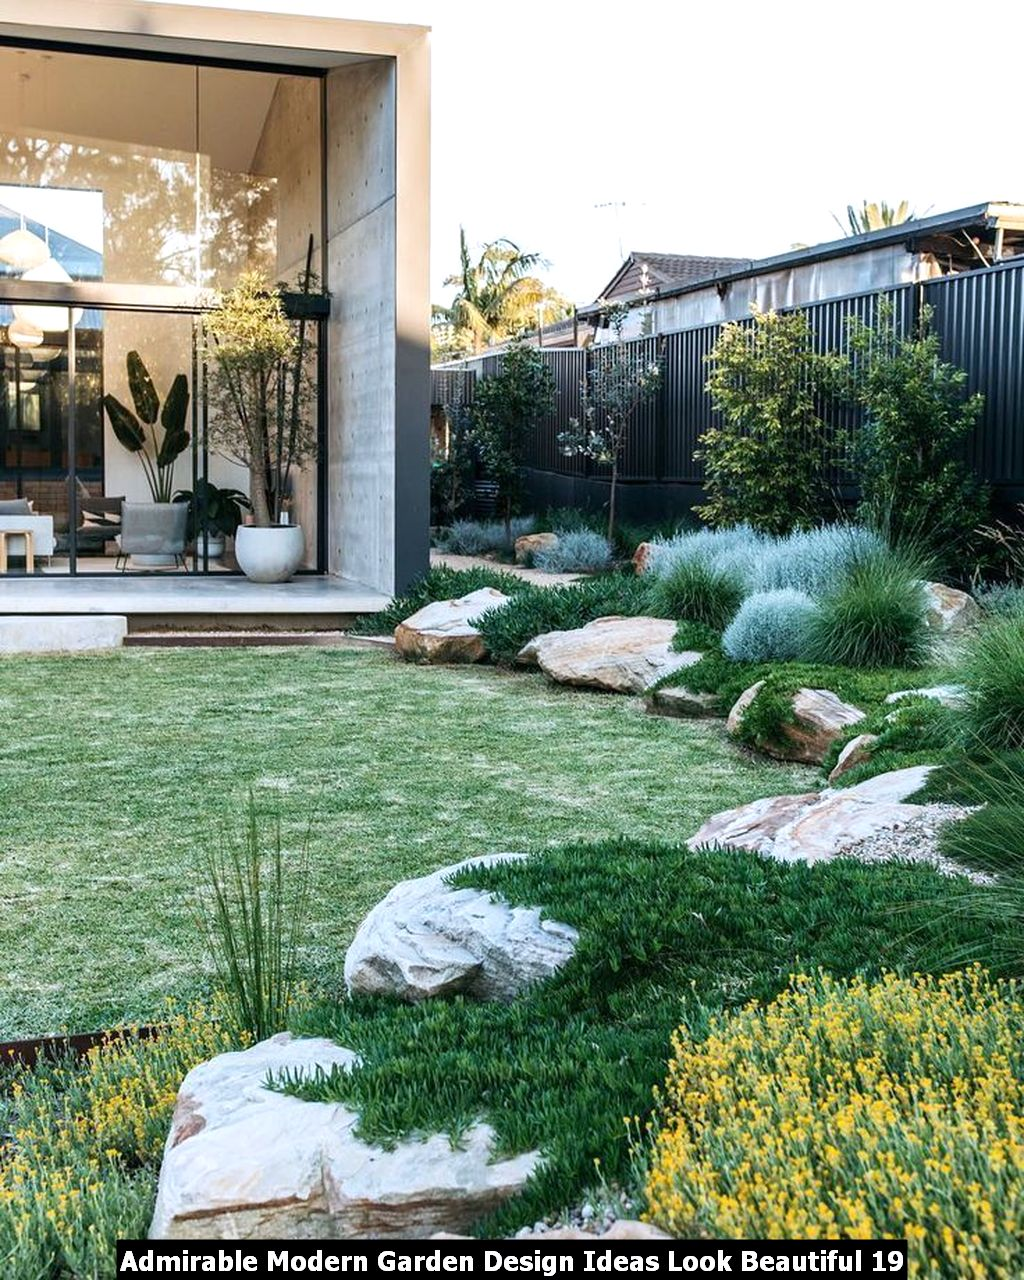 Admirable Modern Garden Design Ideas Look Beautiful 19